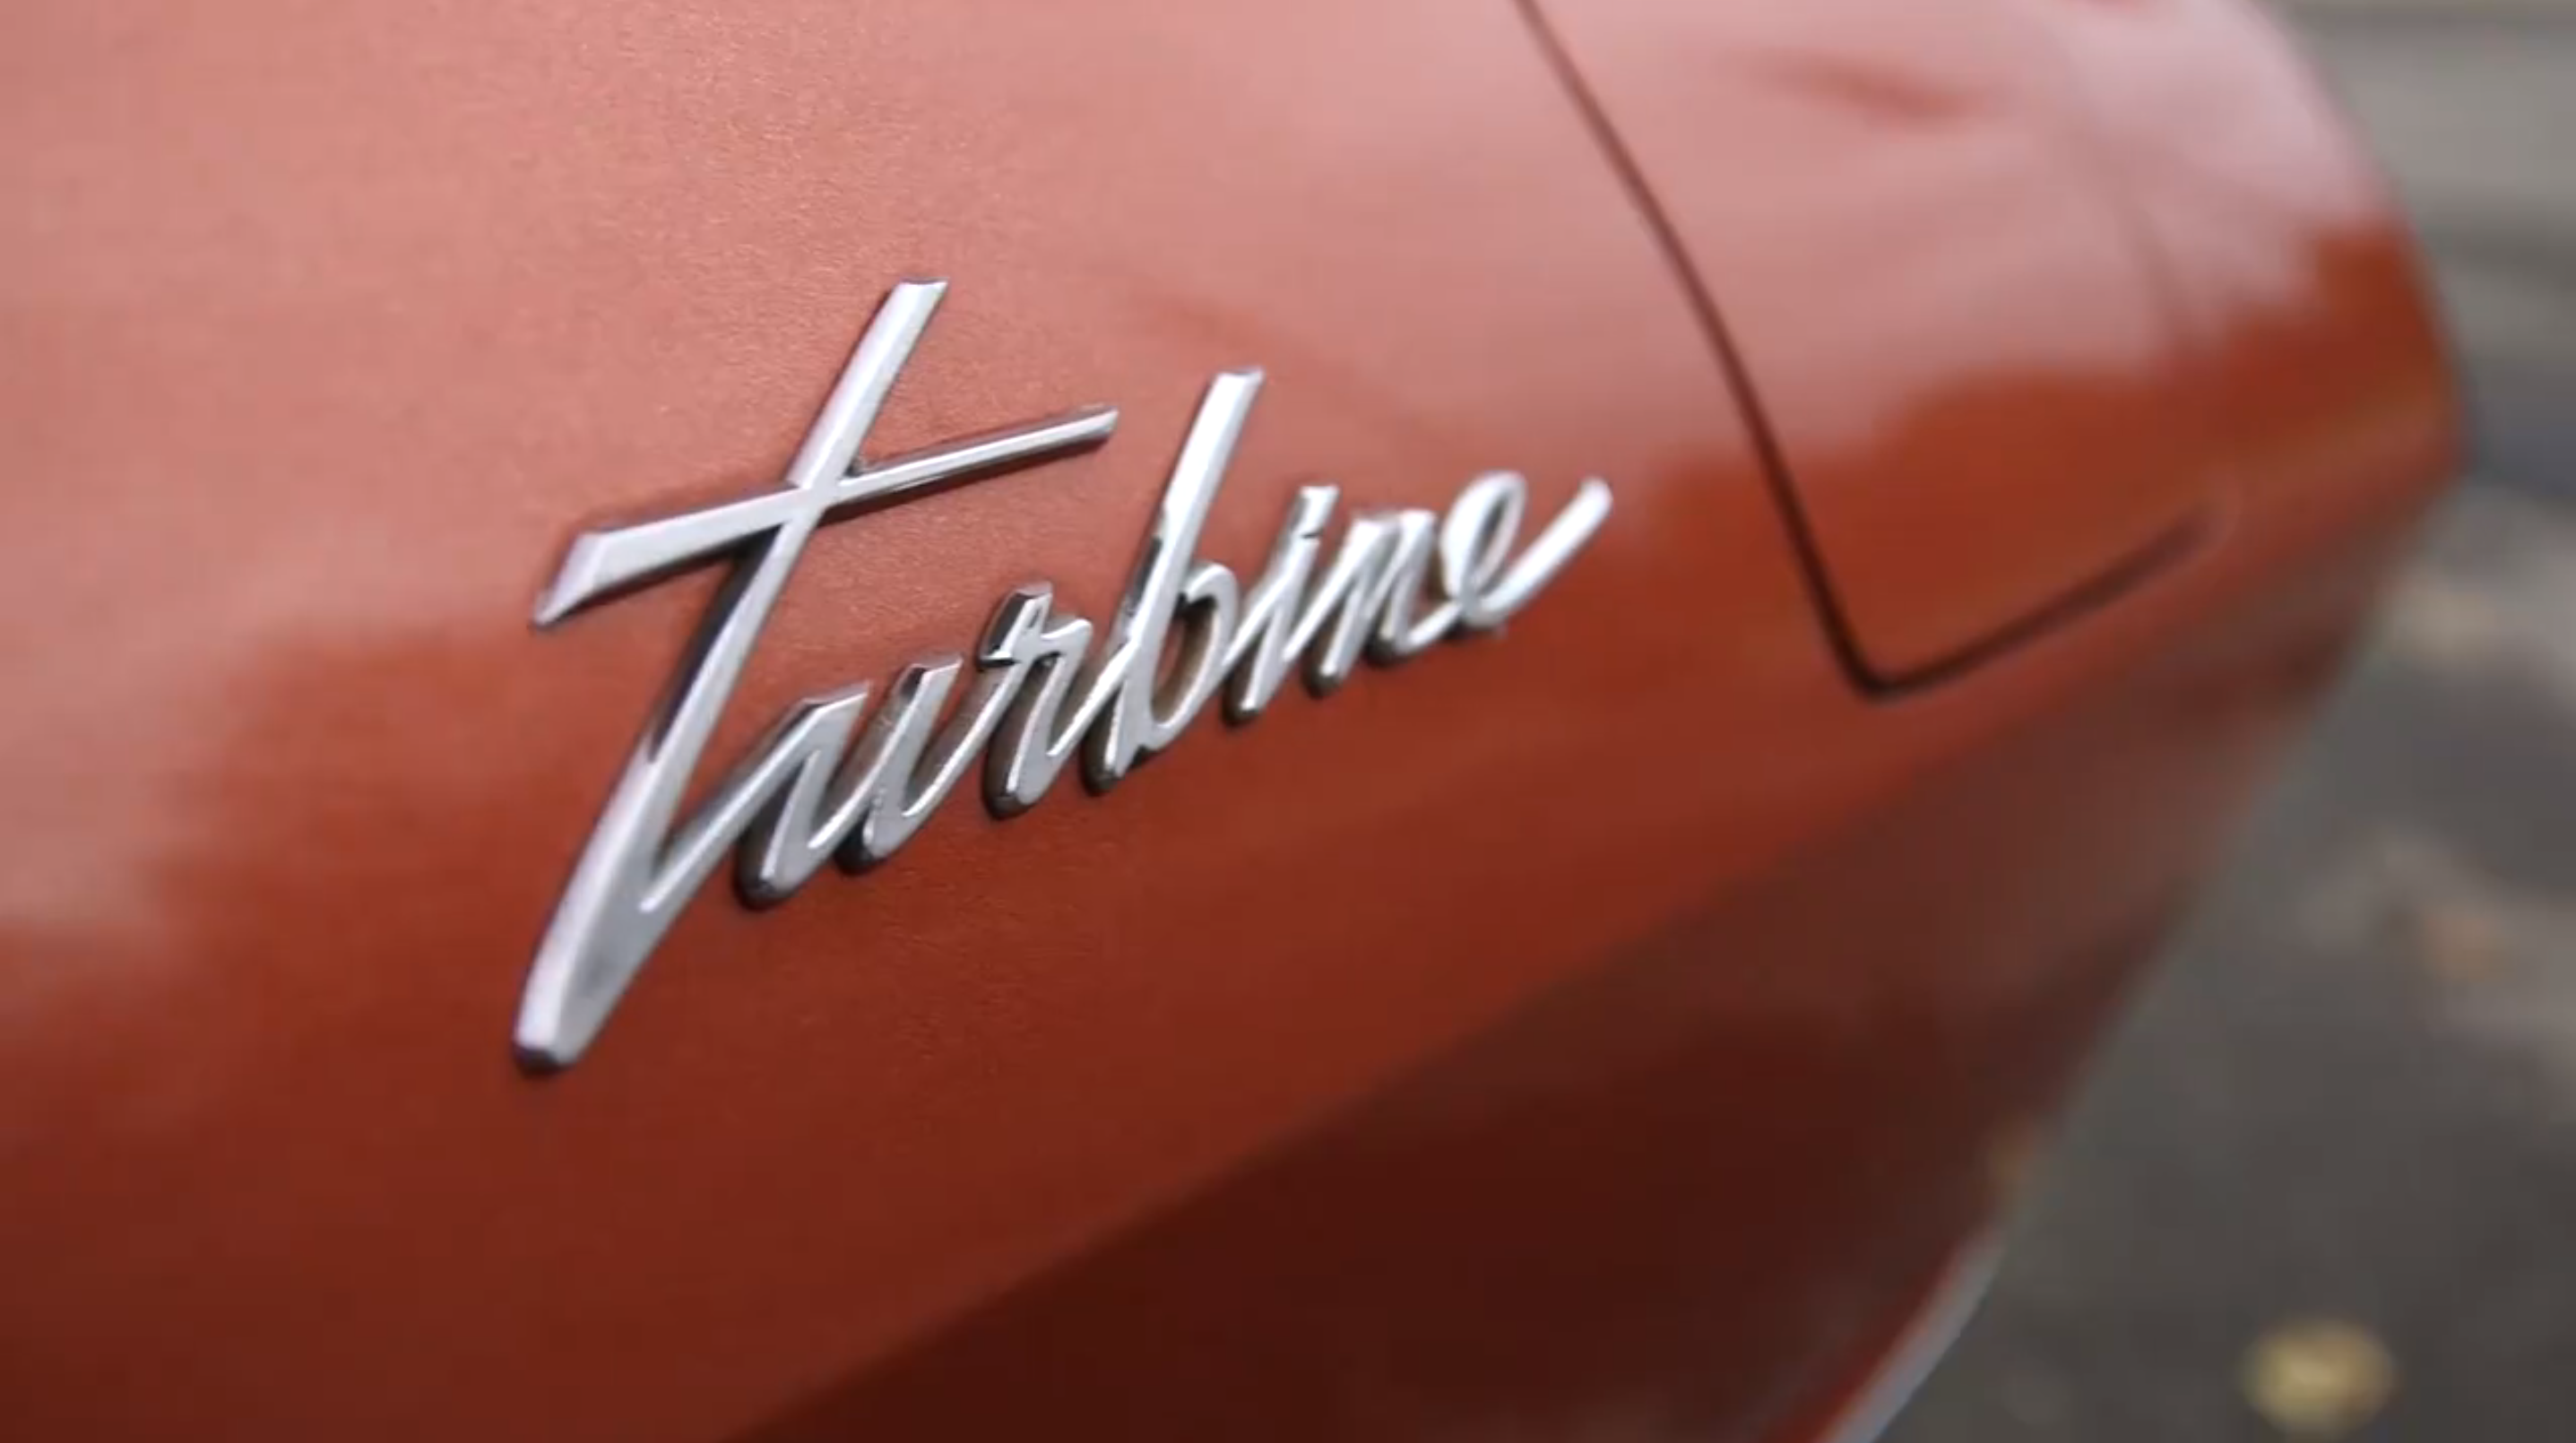 Chrysler Turbine Car. From CNNTech Bronte Lord's test-drive video.